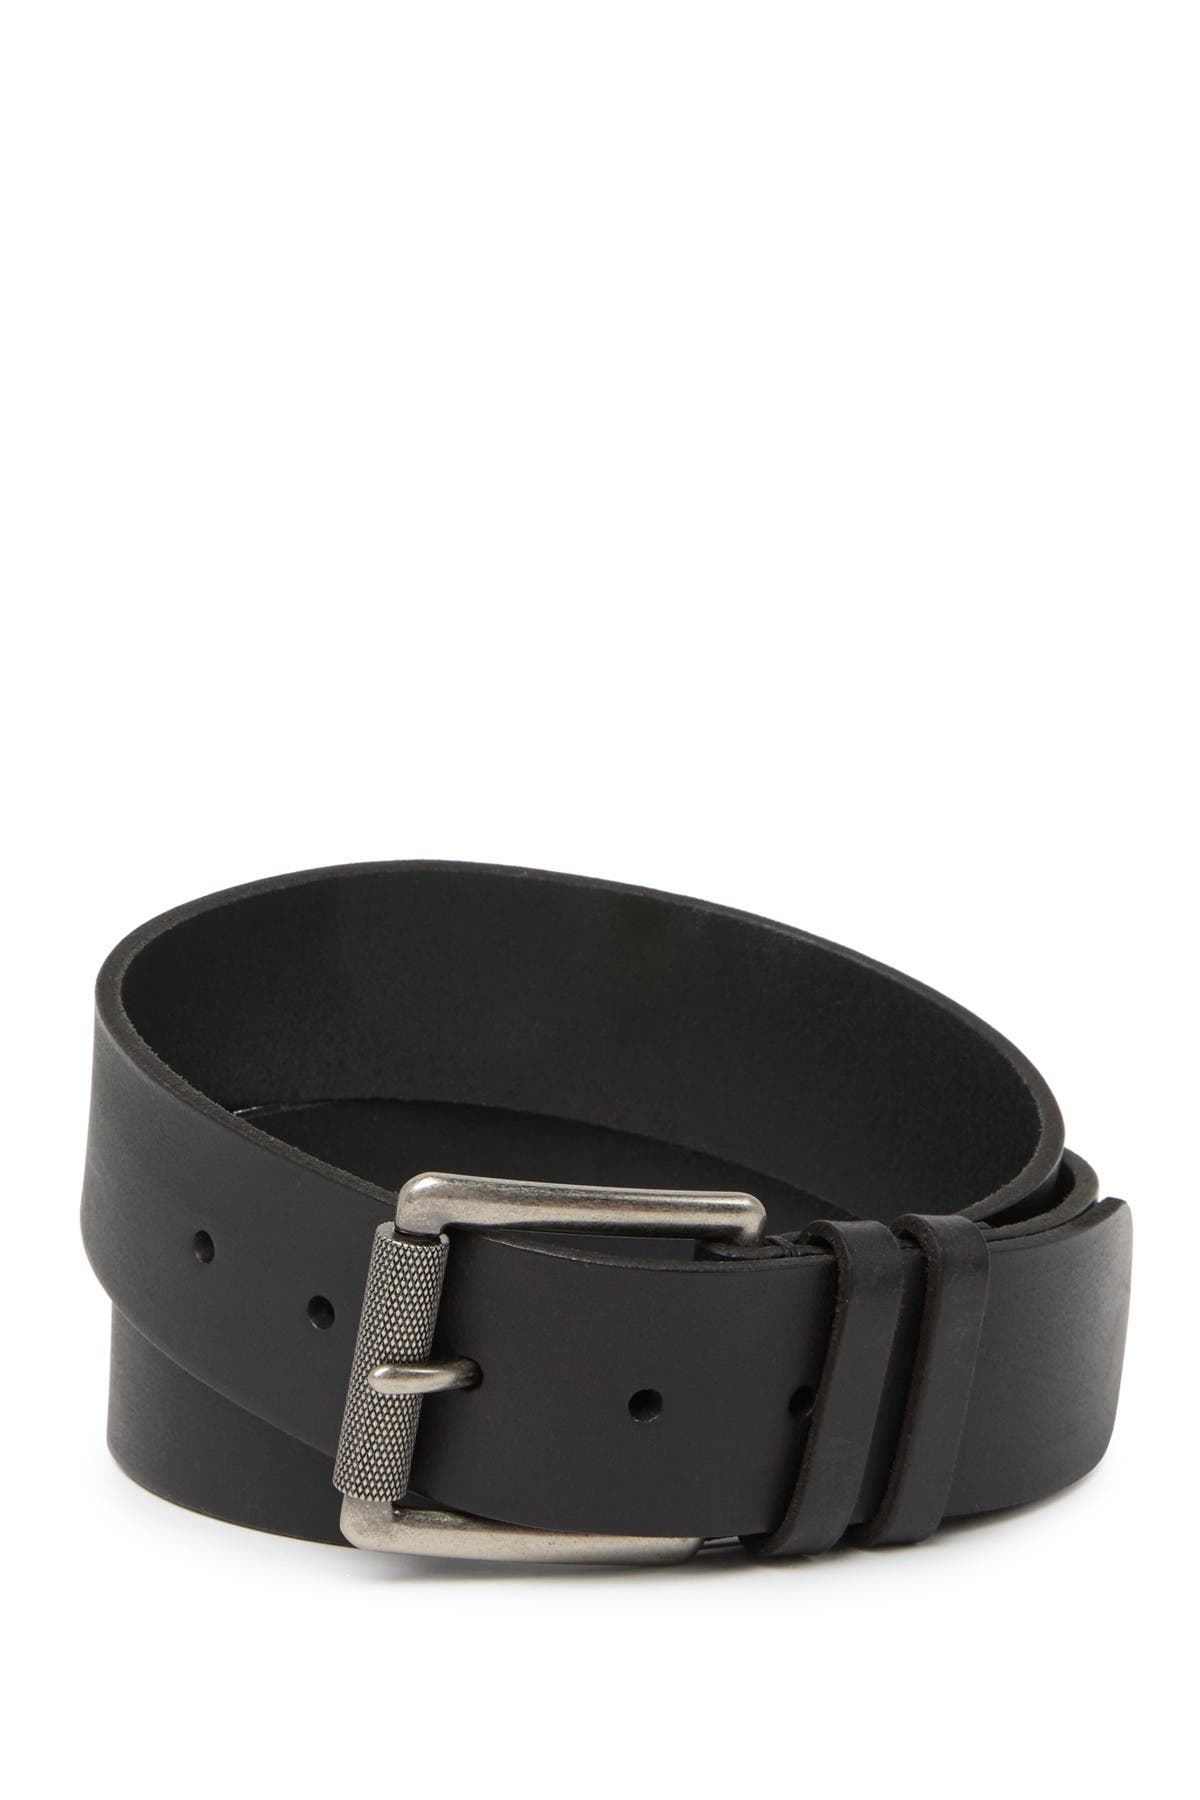 Image of Frye Leather Double Keeper Belt